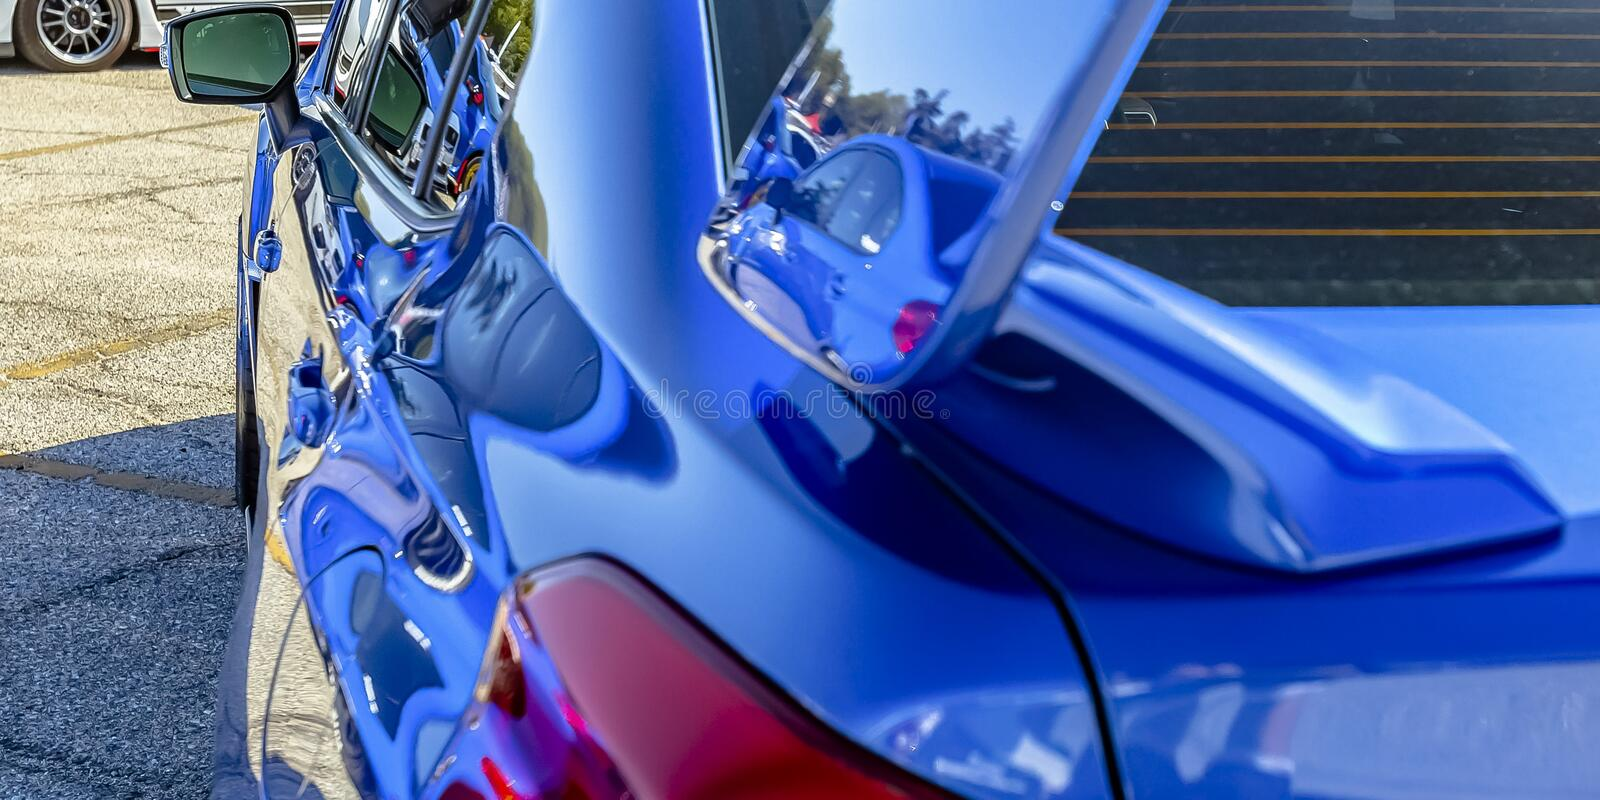 Exterior of a blue car reflecting sunlight. View of the back and side of a blue car with red taillight and black framed side mirror. Sun rays bounces off the royalty free stock photo